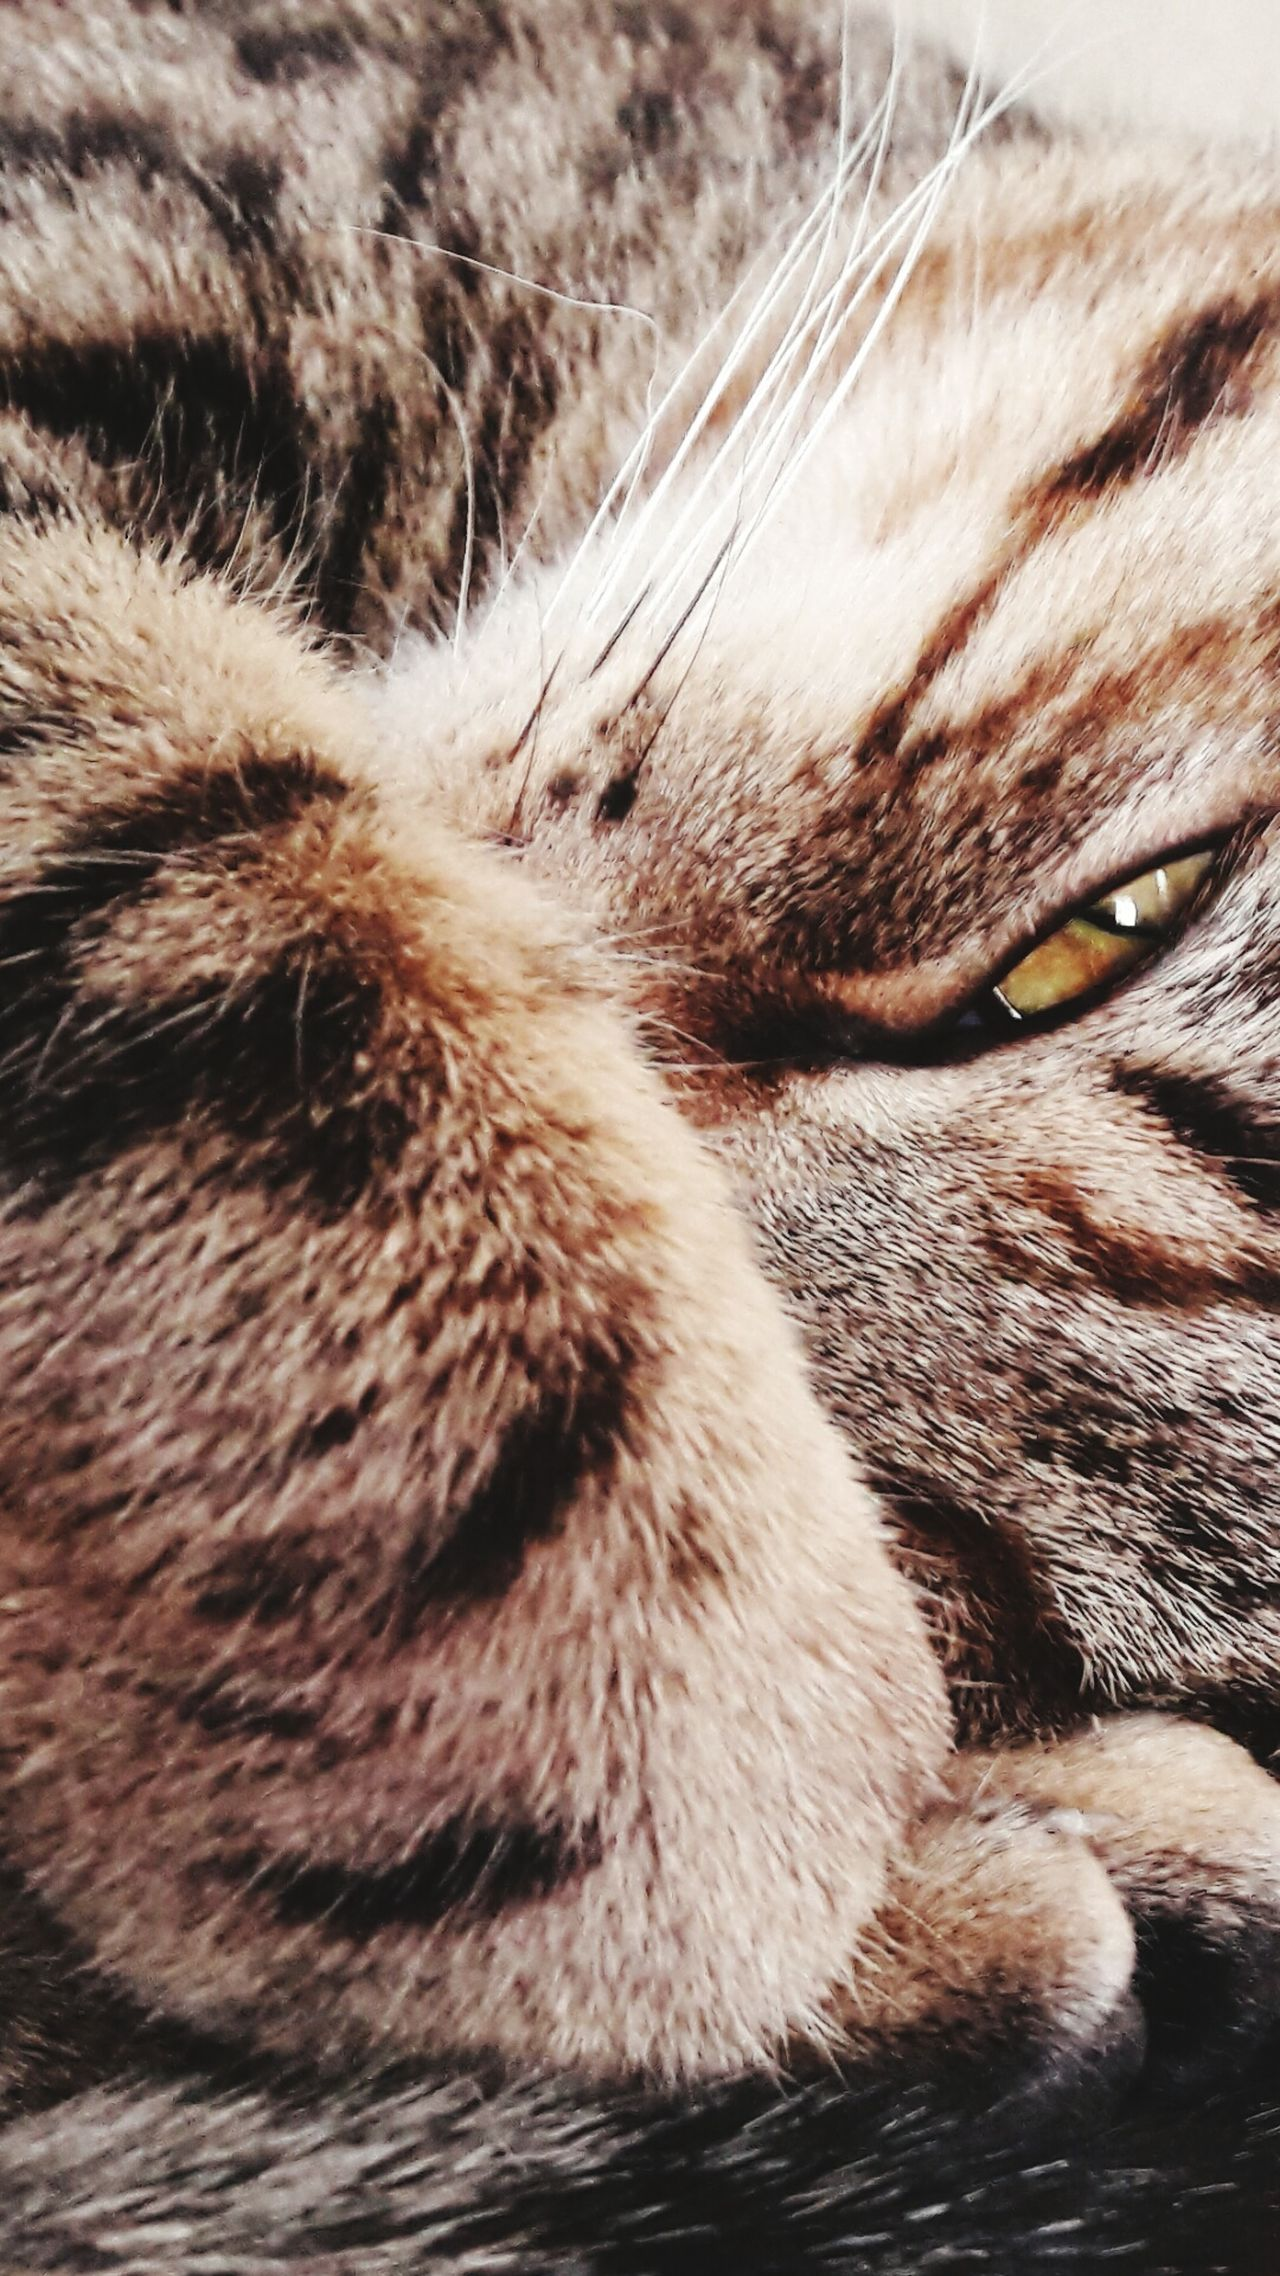 Domestic Cat Domestic Animals Pets Feline Close-up Cat Wallpaper Screensaver Screen Lock Onscreen Animals Lovecats Lovecats❤️ Animal Themes Theme Cute♡ Cats Close Up Closeup Fur Furry Furry Friends Furryfriend Layout